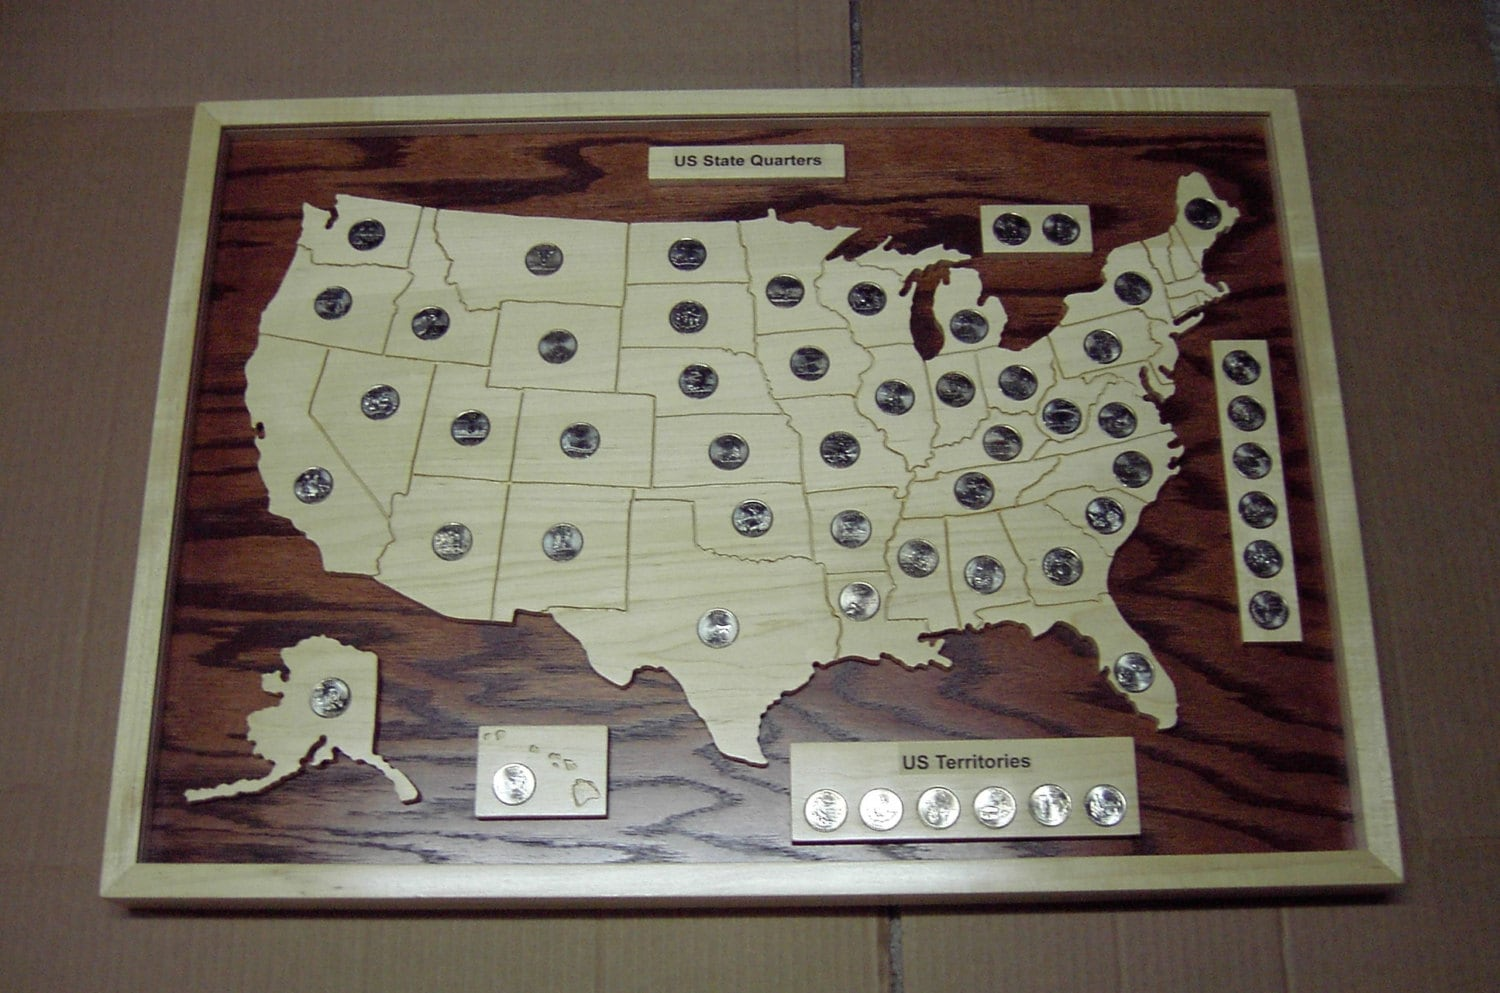 Quarter Coin Holder Shaped Like Pigs - Us map for quarters